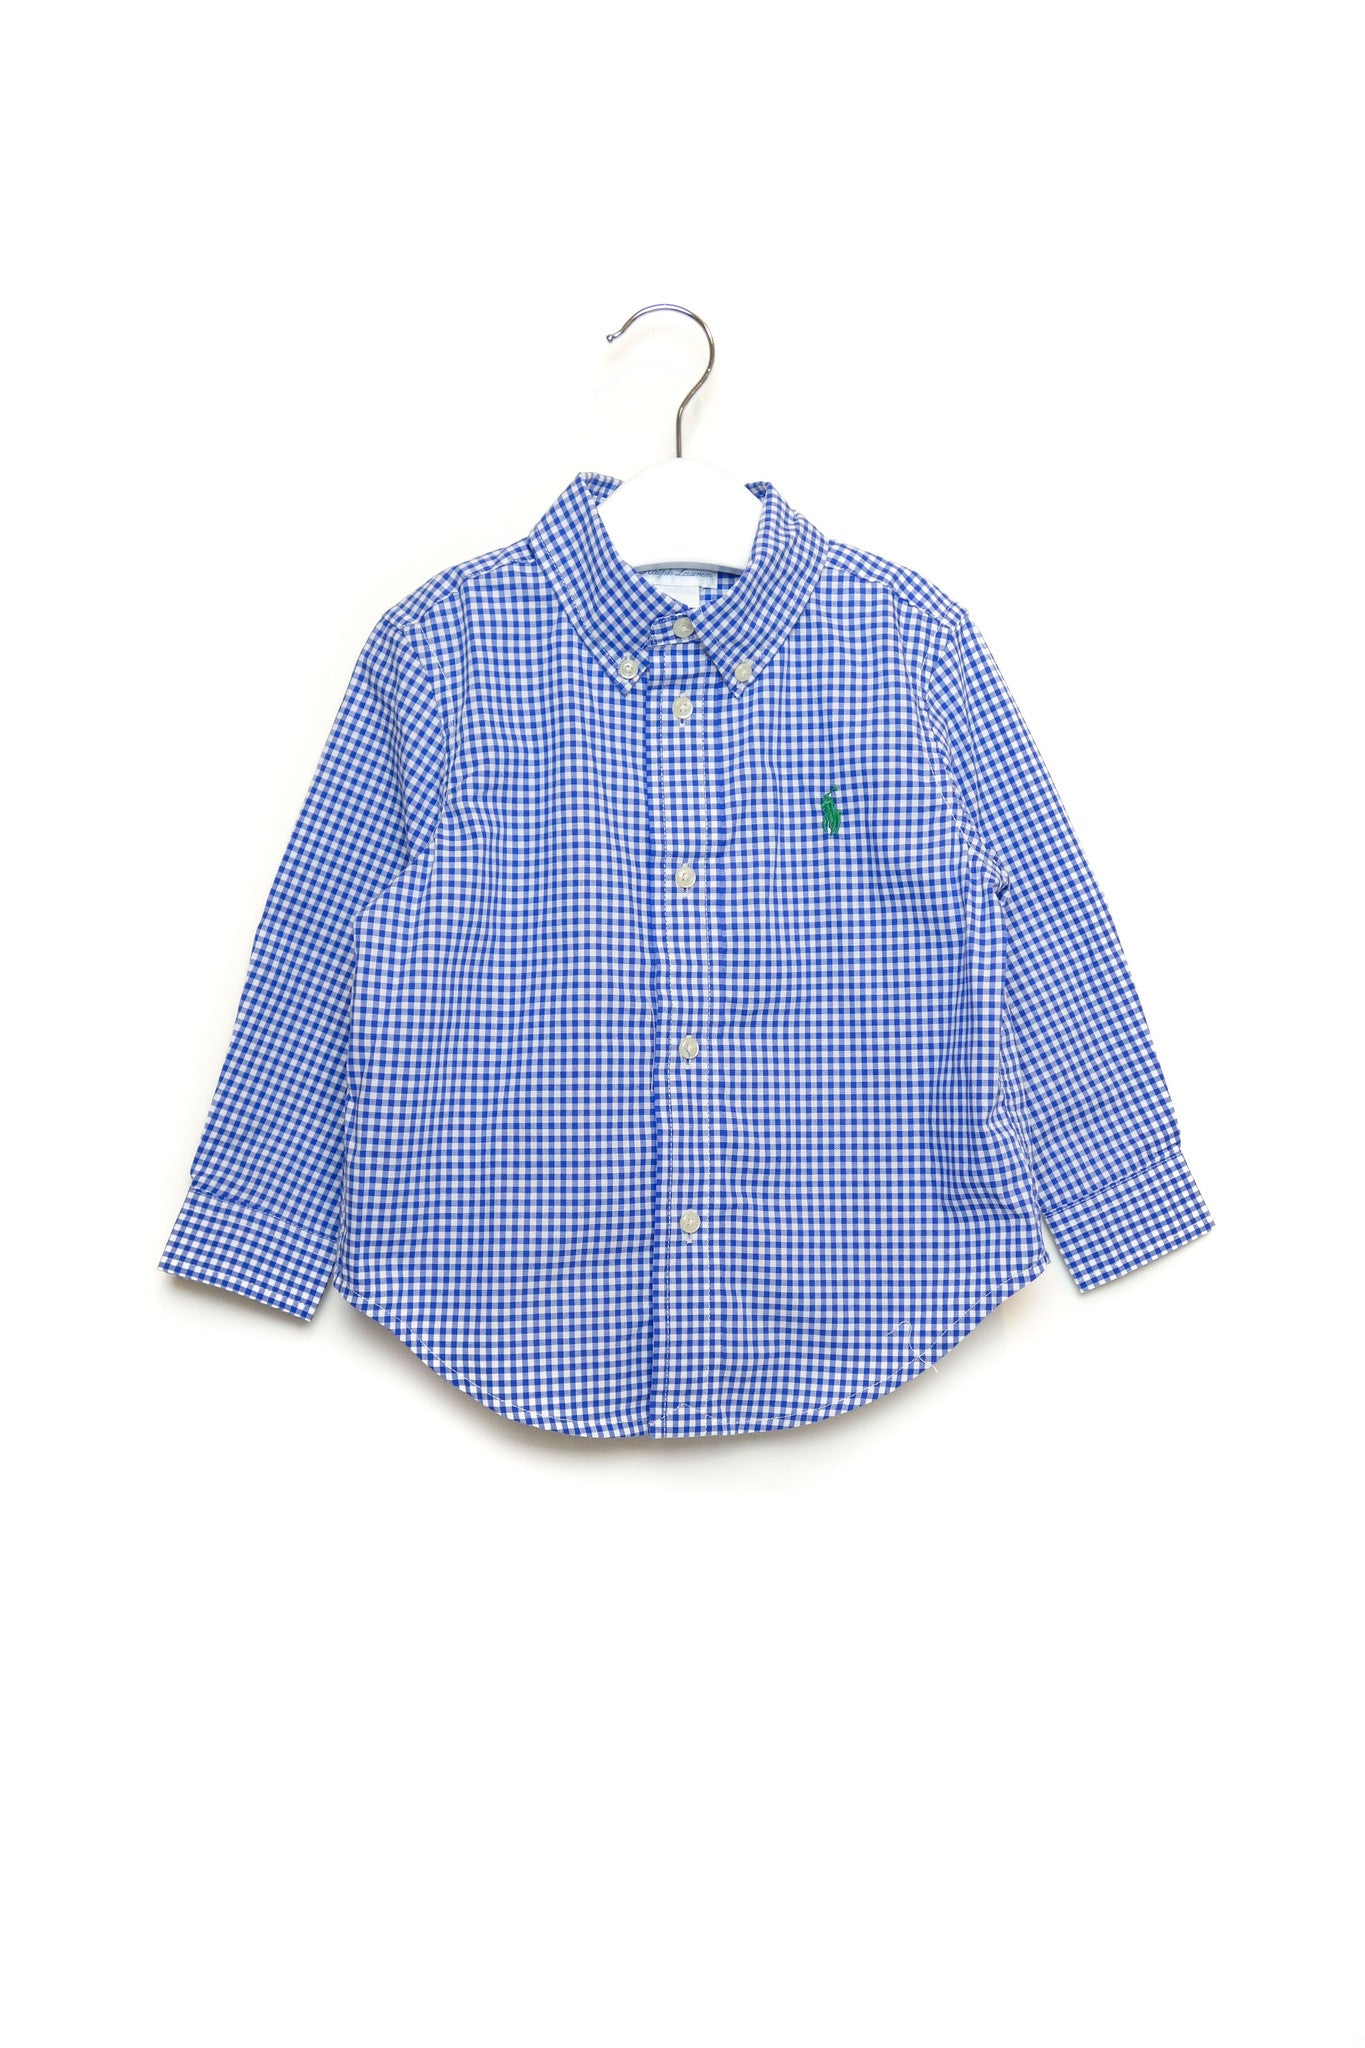 Shirt 2T, Ralph Lauren at Retykle - Online Baby & Kids Clothing Up to 90% Off